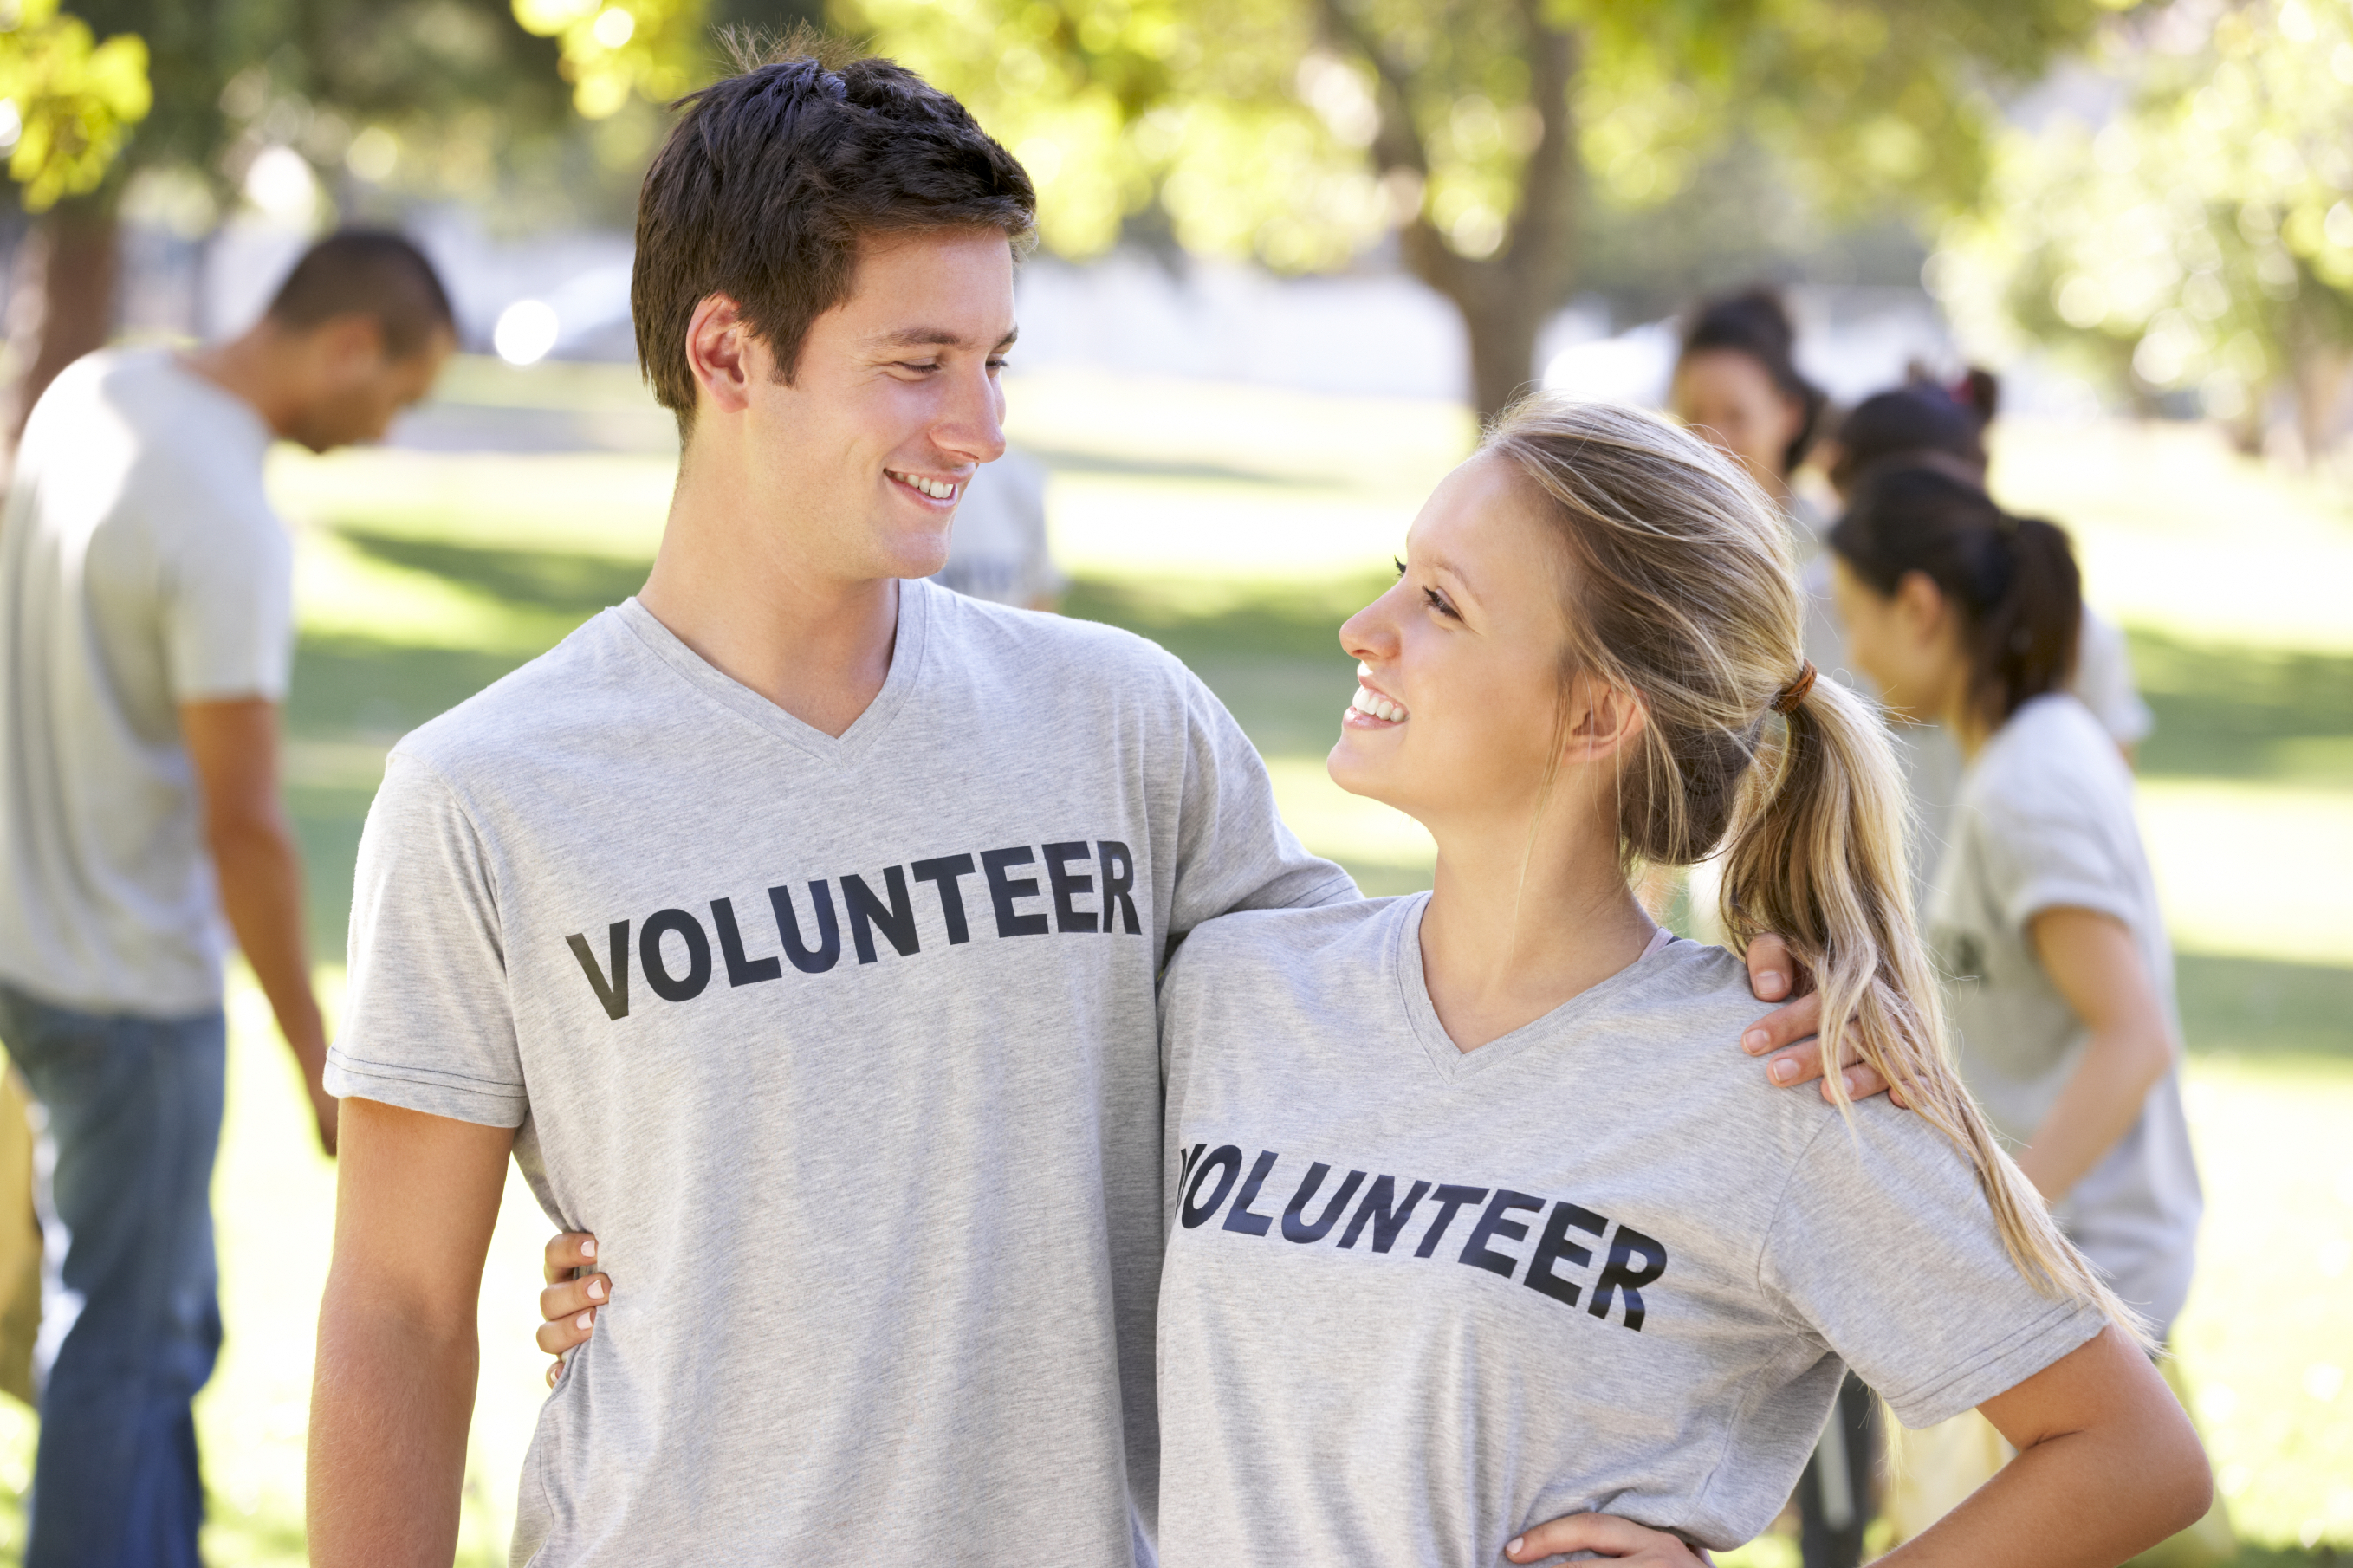 Two people wearing volunteer shirts hugging each other